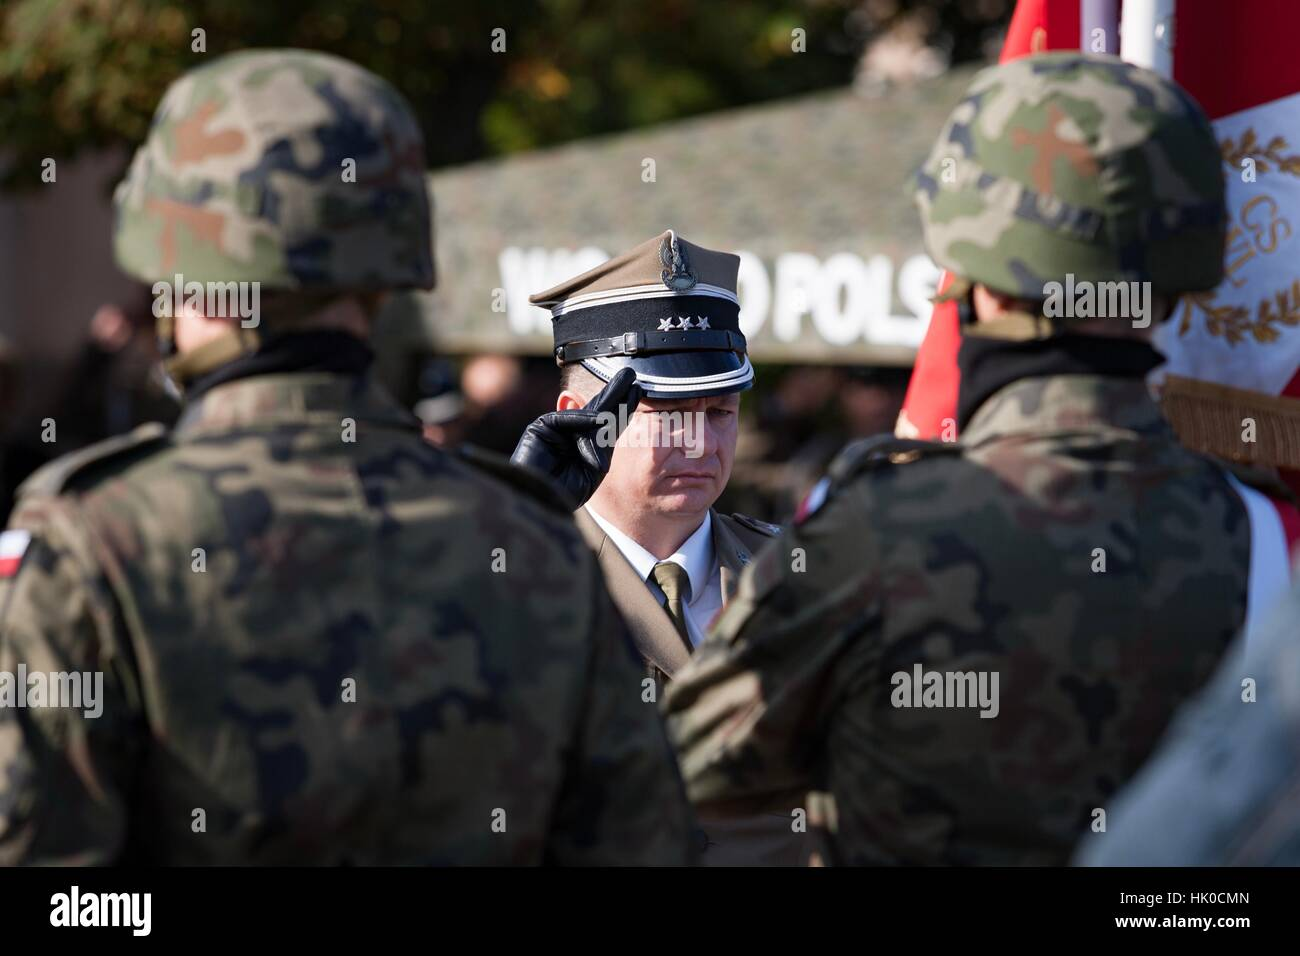 Poznan, Poland - September 29, 2012 Land Forces Training Centre in Poznan. Open day inaugurating the new academic year. Stock Photo